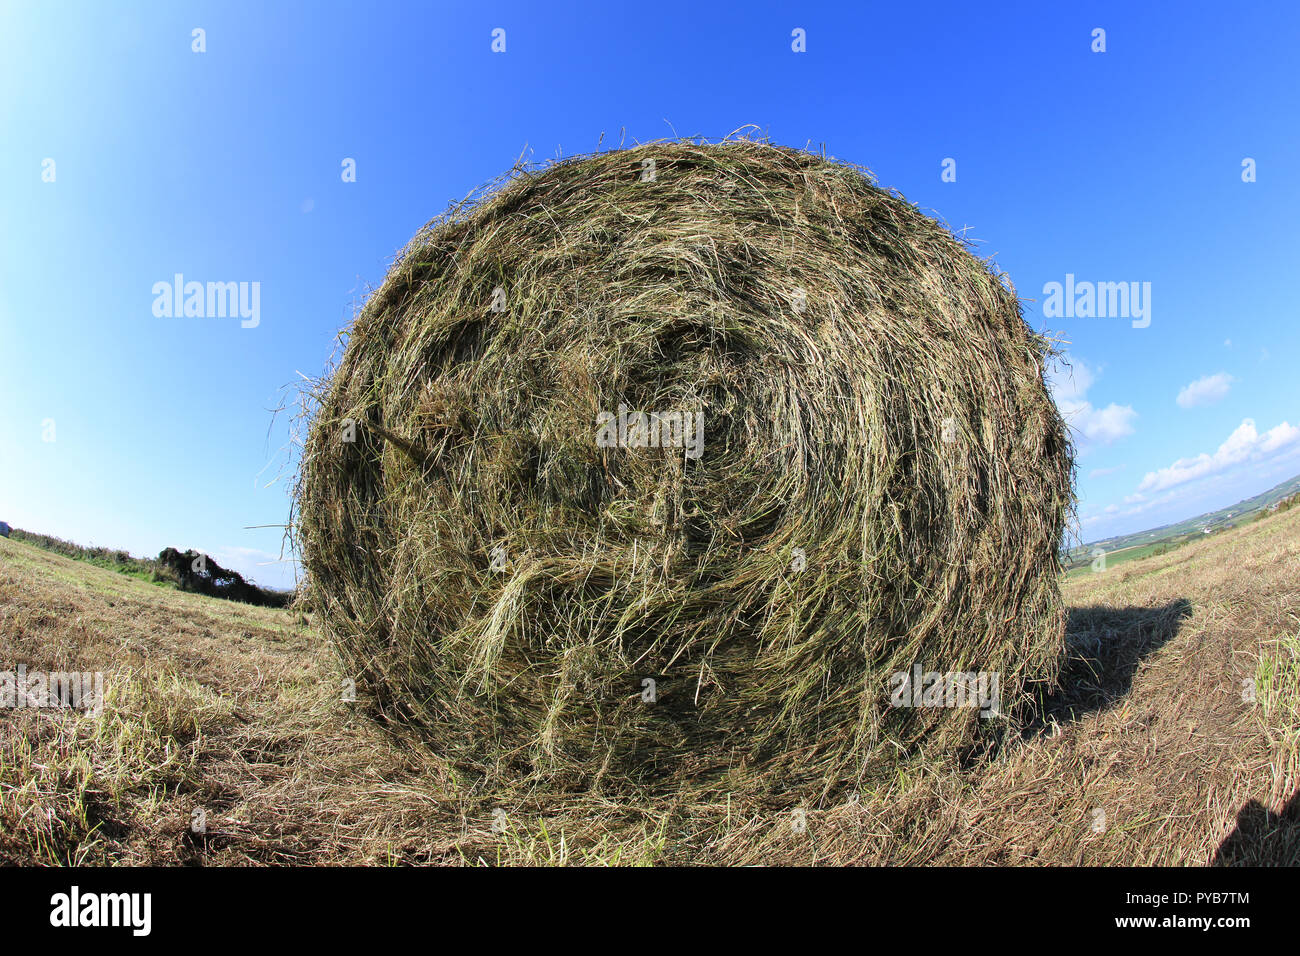 large round bale of grain straw lying in a field, wild atlantic way, county kerry, ireland - Stock Image